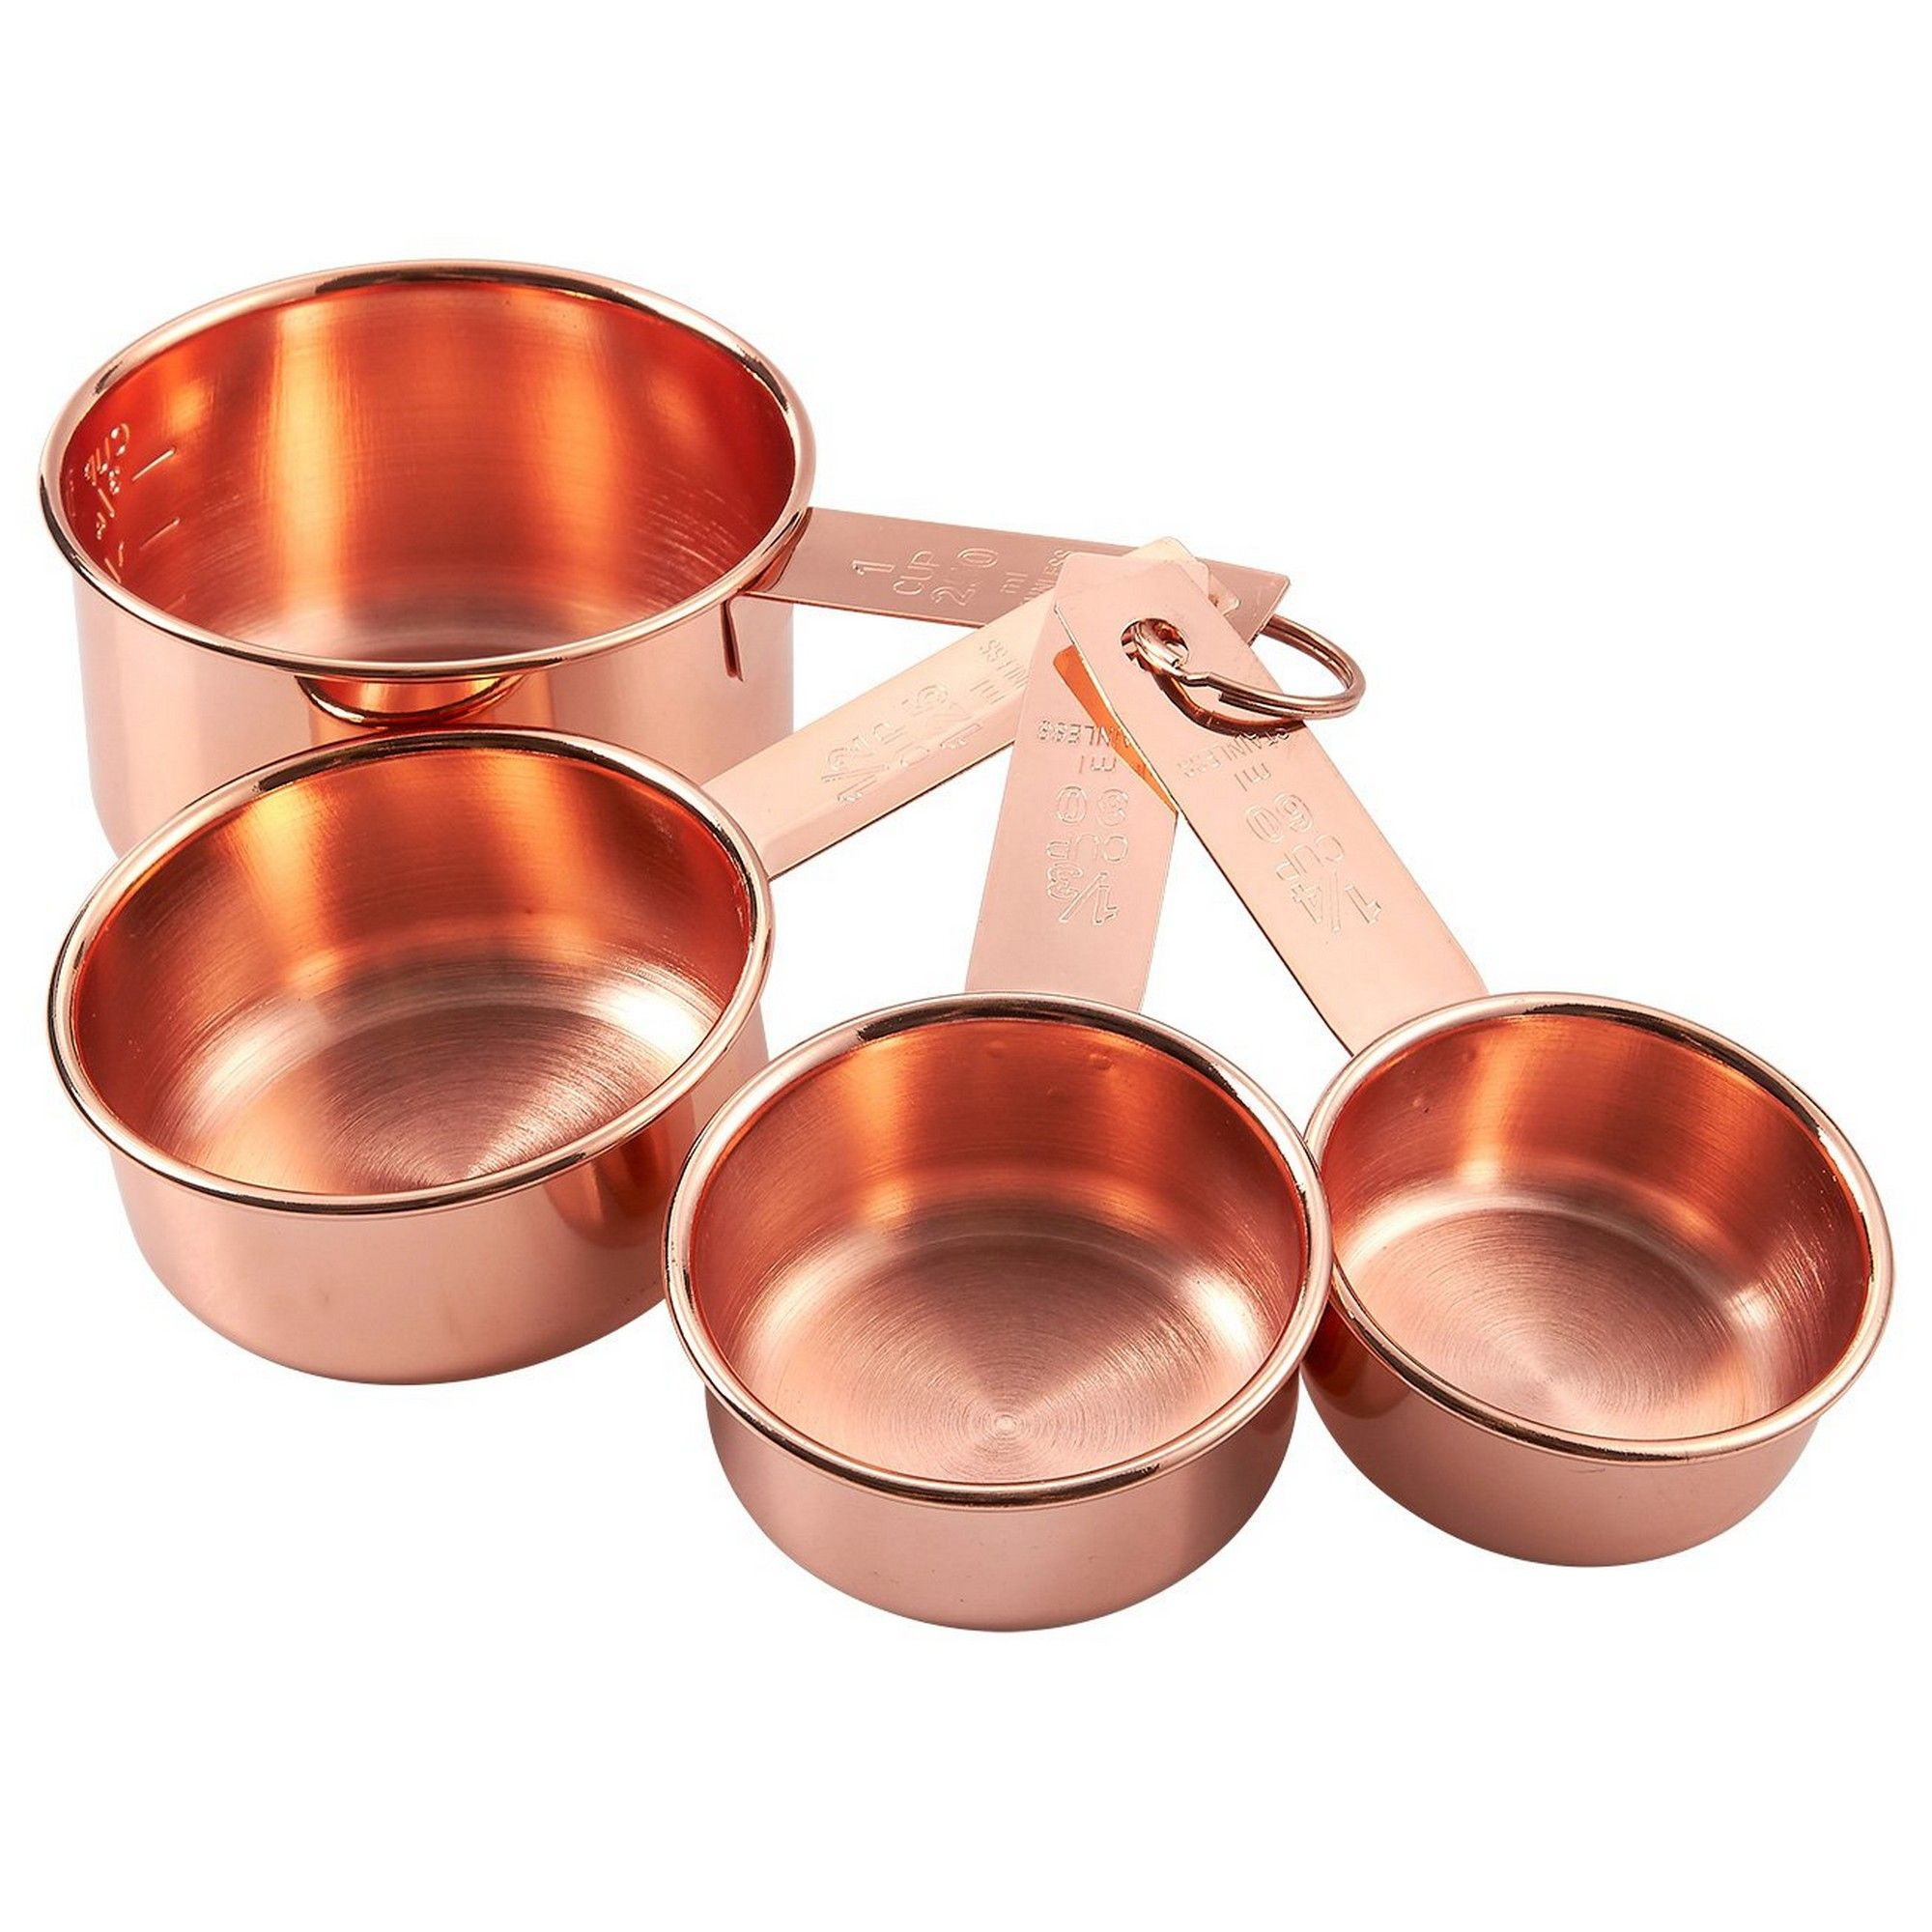 4 Piece Set Of Stainless Steel Measuring Cup Set